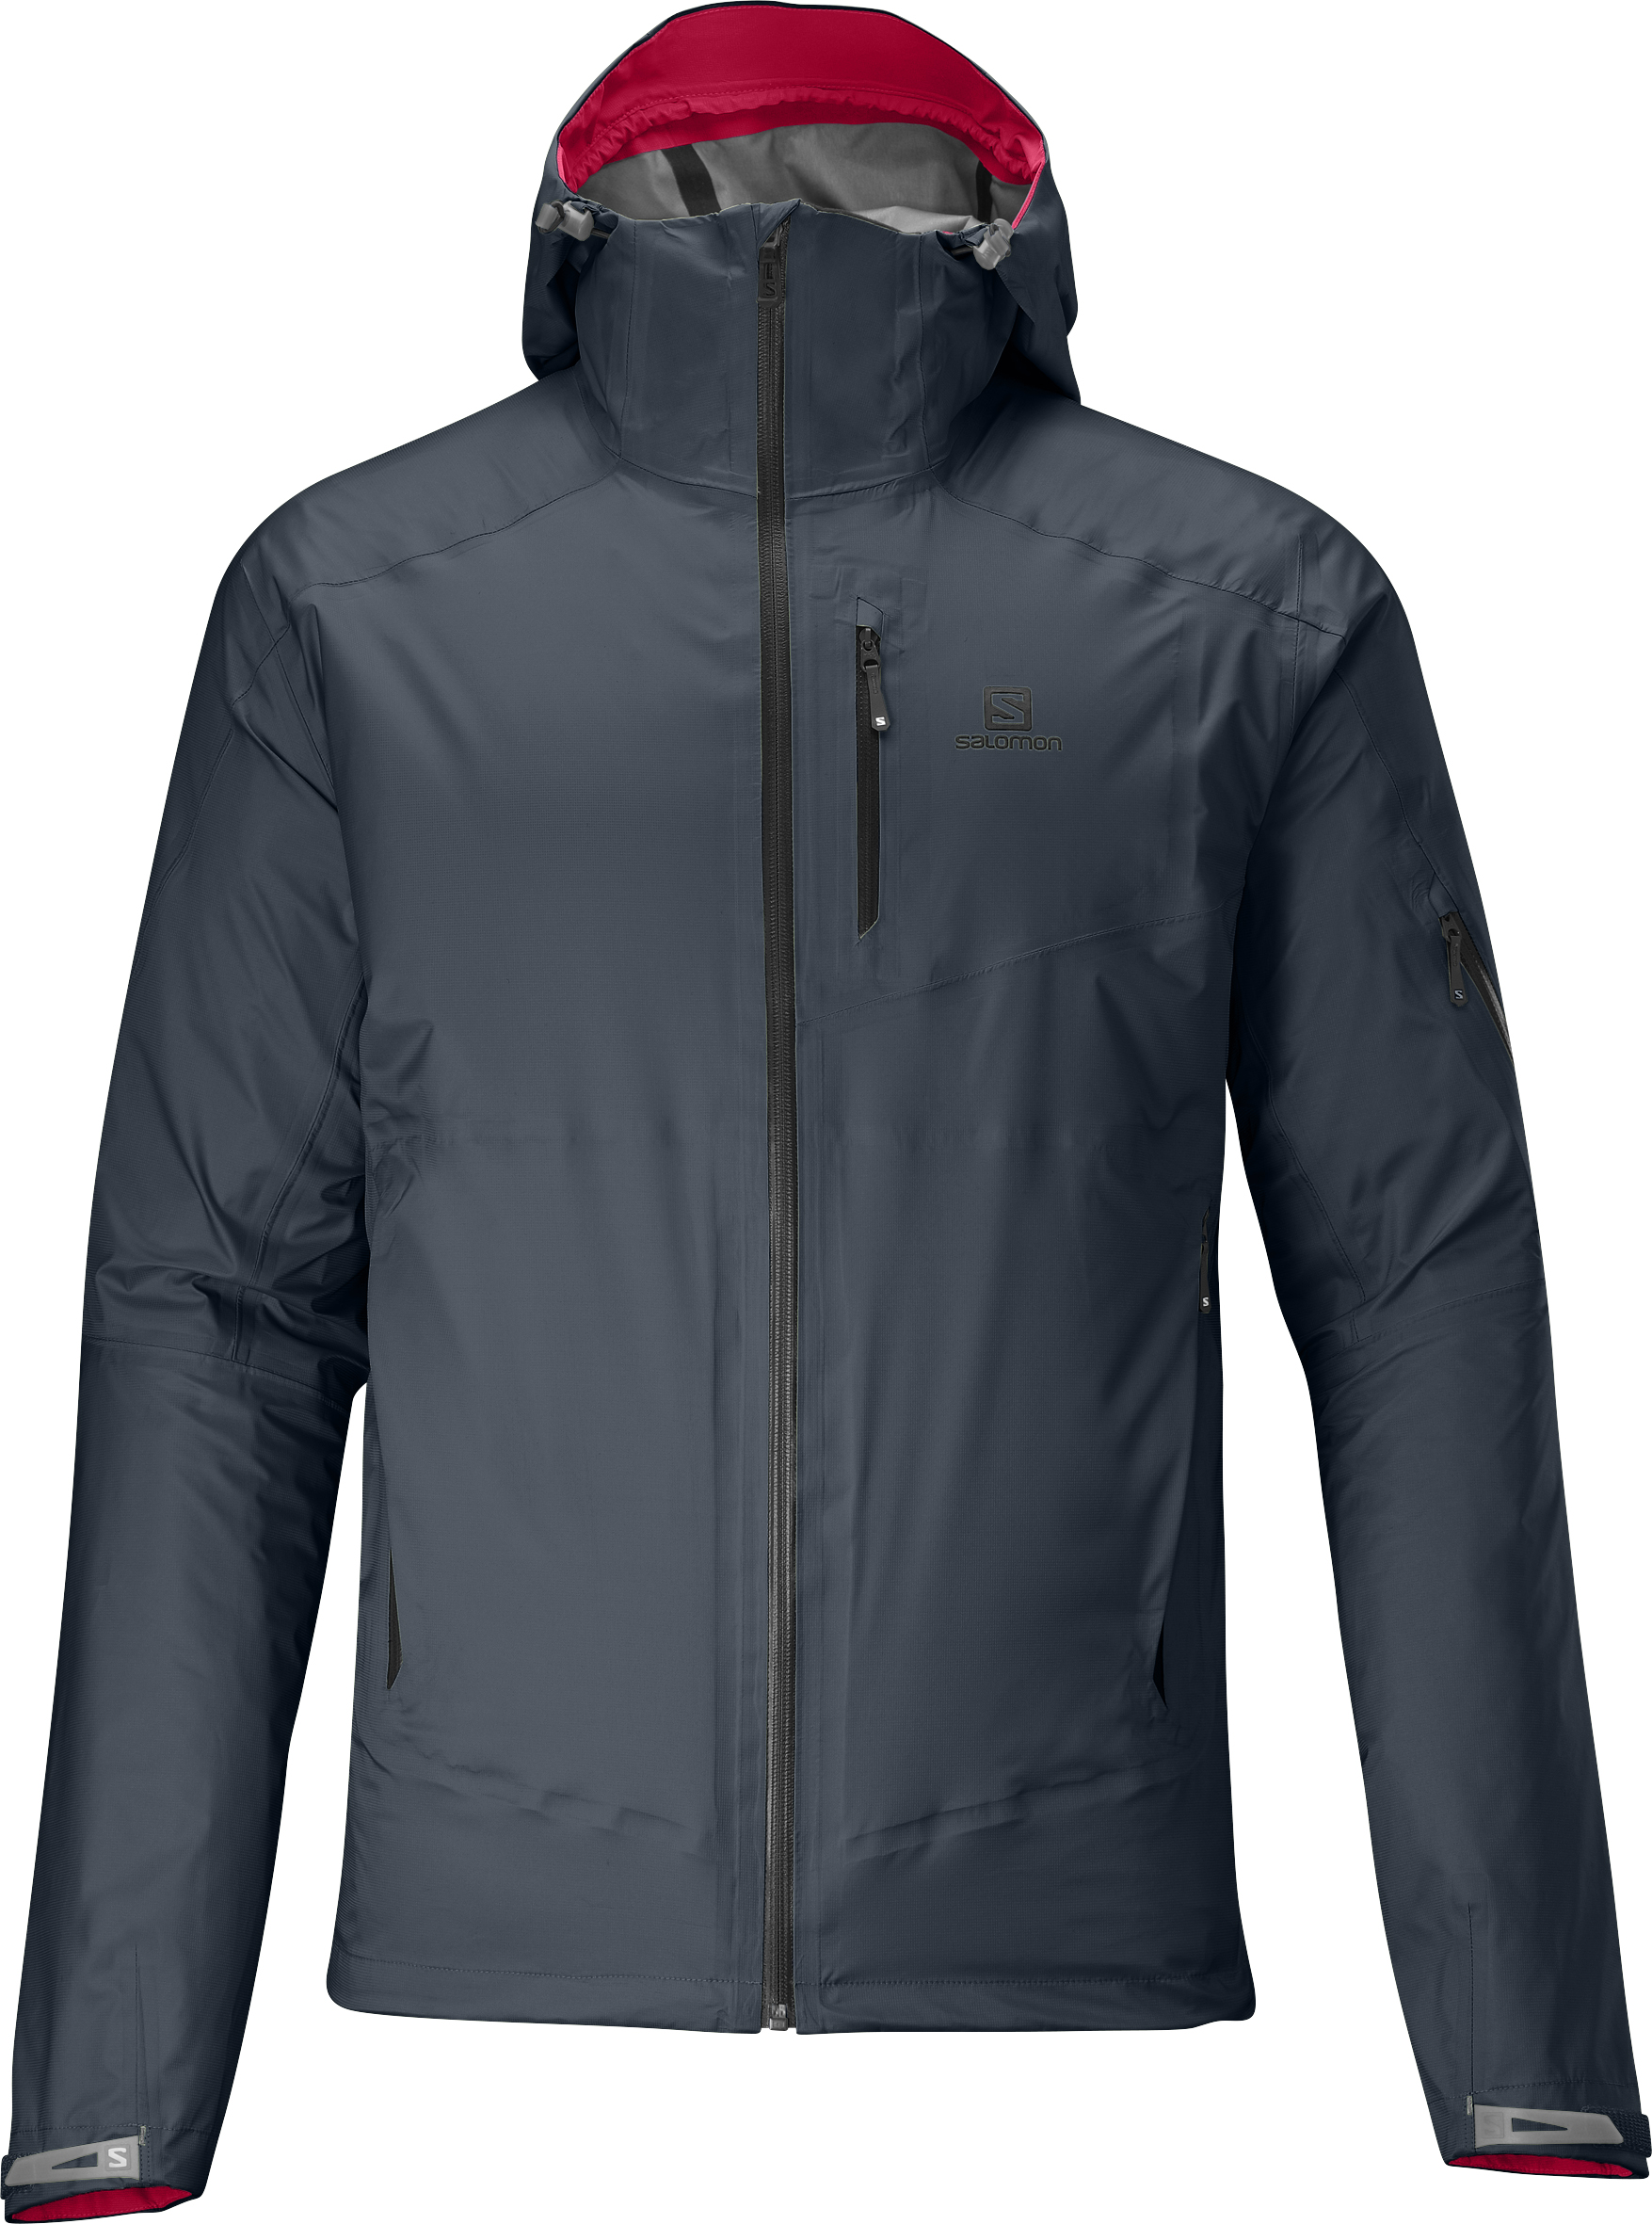 Patagonia Ascensionist Jacket Review